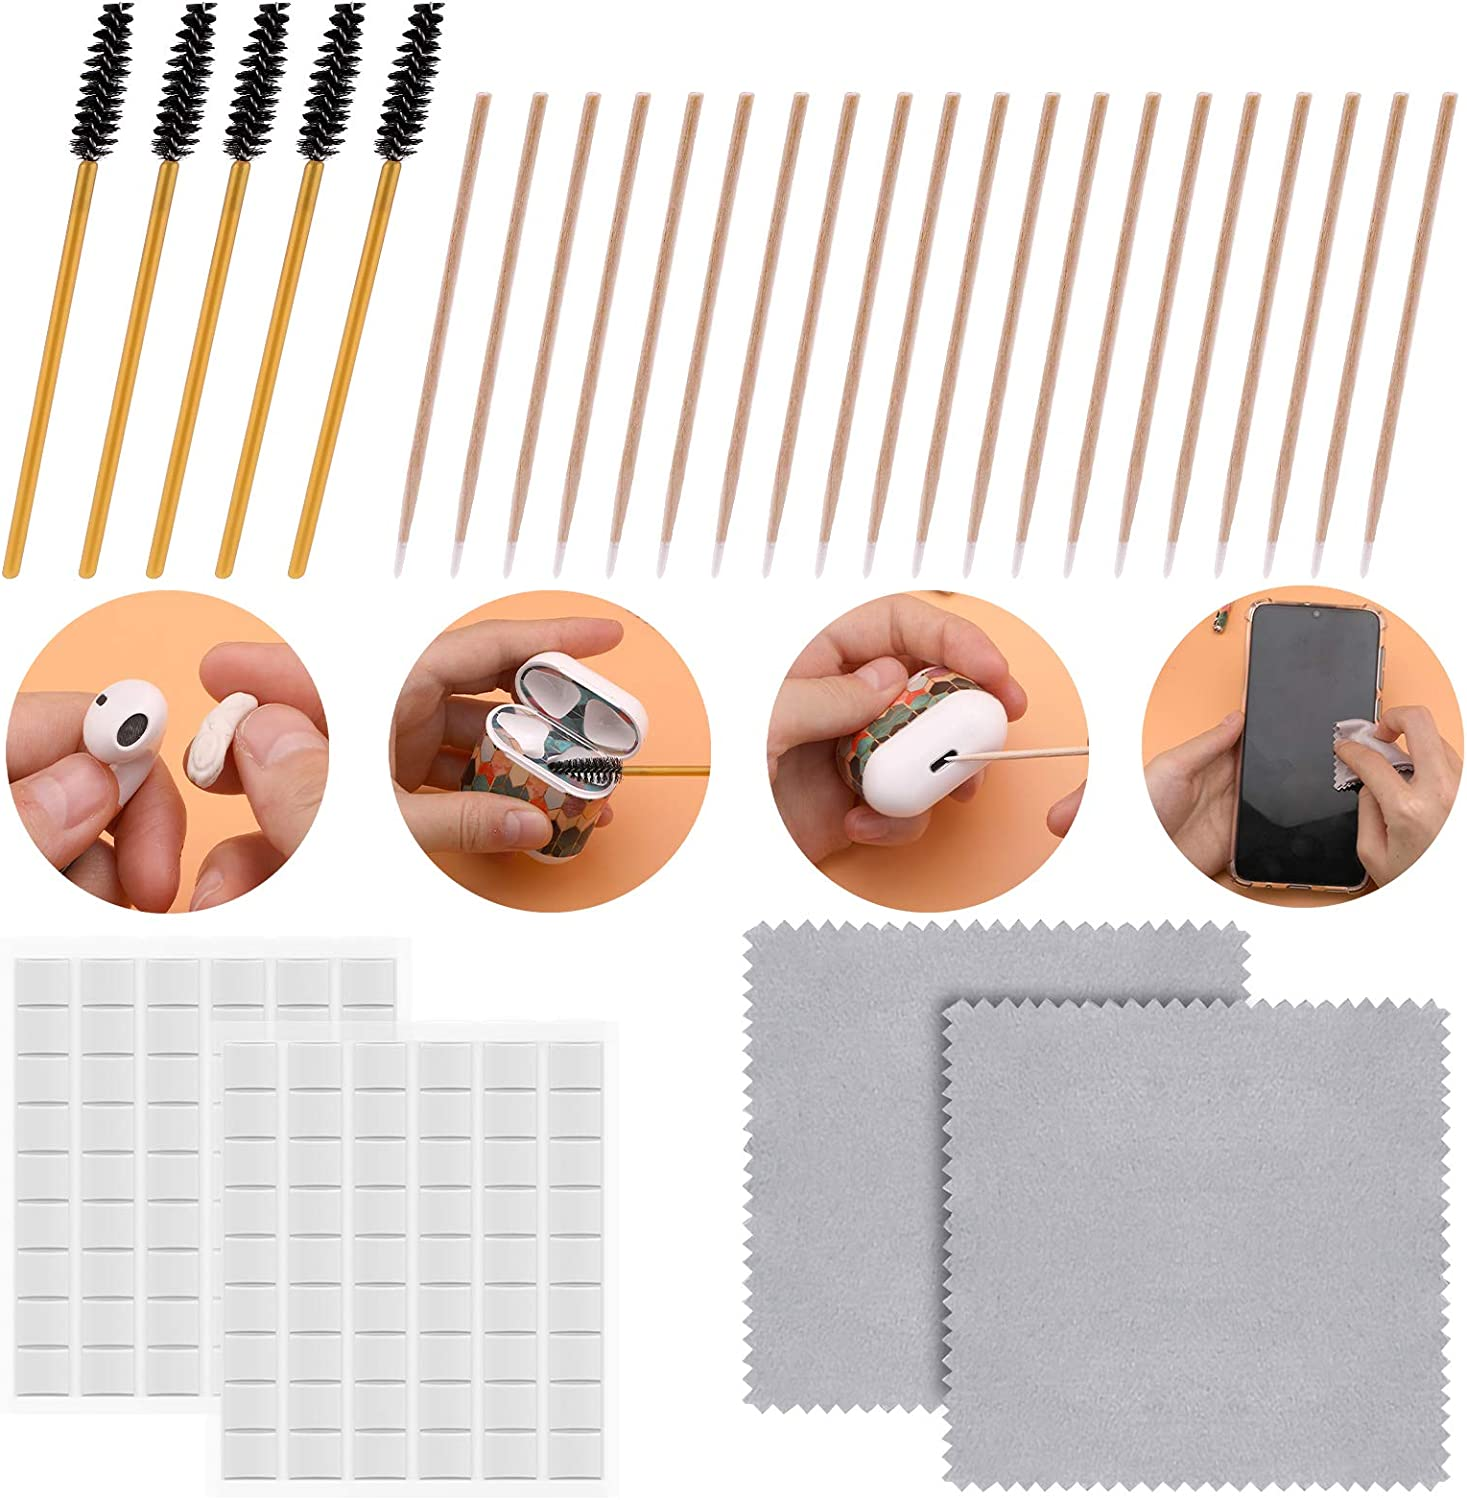 SAVITA 215pcs Professional Cleaner Kit Included 108pcs Putty Removers Wooden Cleaner Sticks Cleaning Brushes Microfiber Cloth for Apple Airpods, Airpods Case, Cellphones, Earphones, Camera, Keyboards